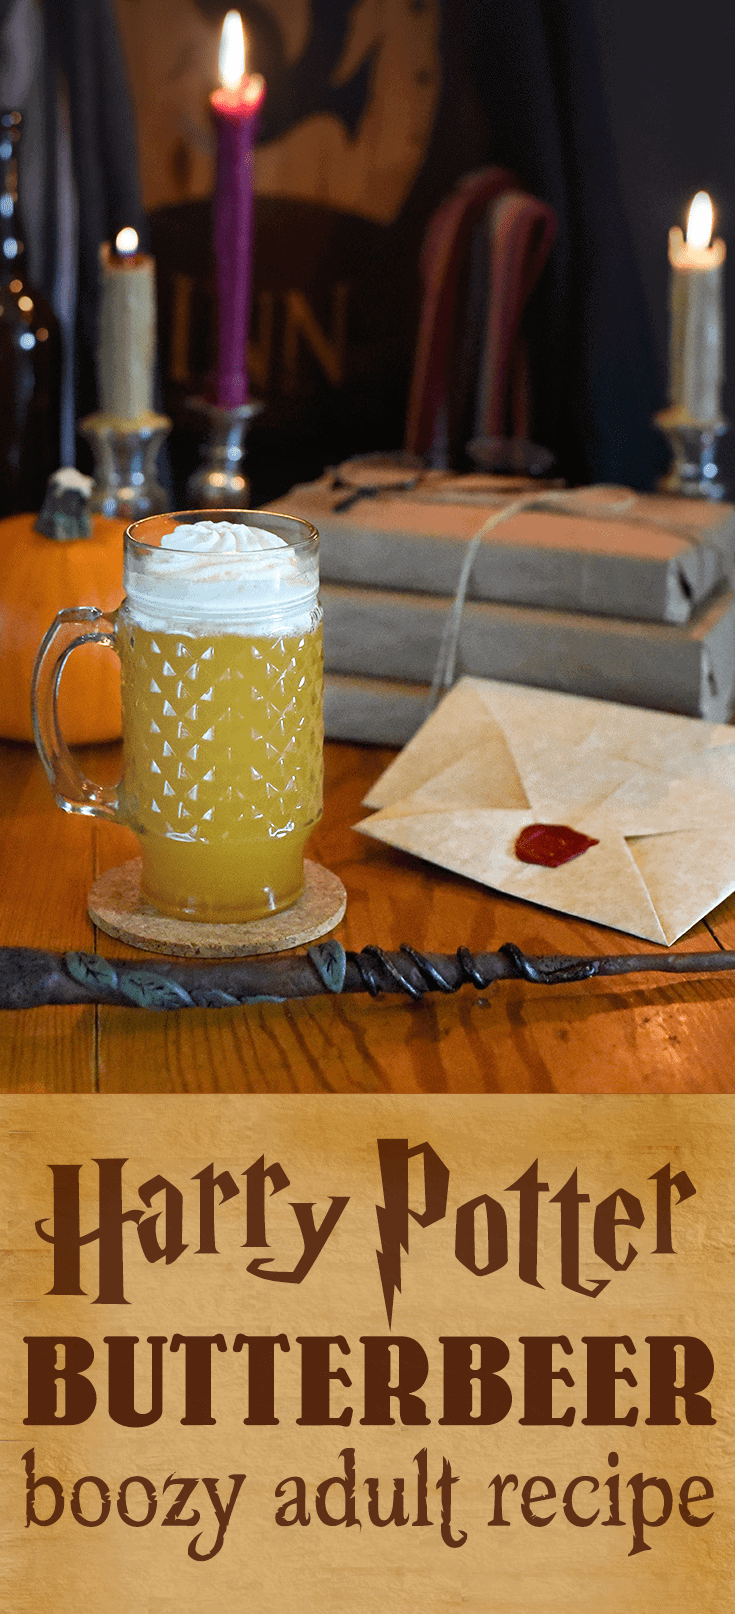 Take an adult trip to Hogsmeade! This boozy take on #butterbeer recipe will give you the feeling of being in the world of Harry Potter, but with an adult twist. | vintagekitty.com